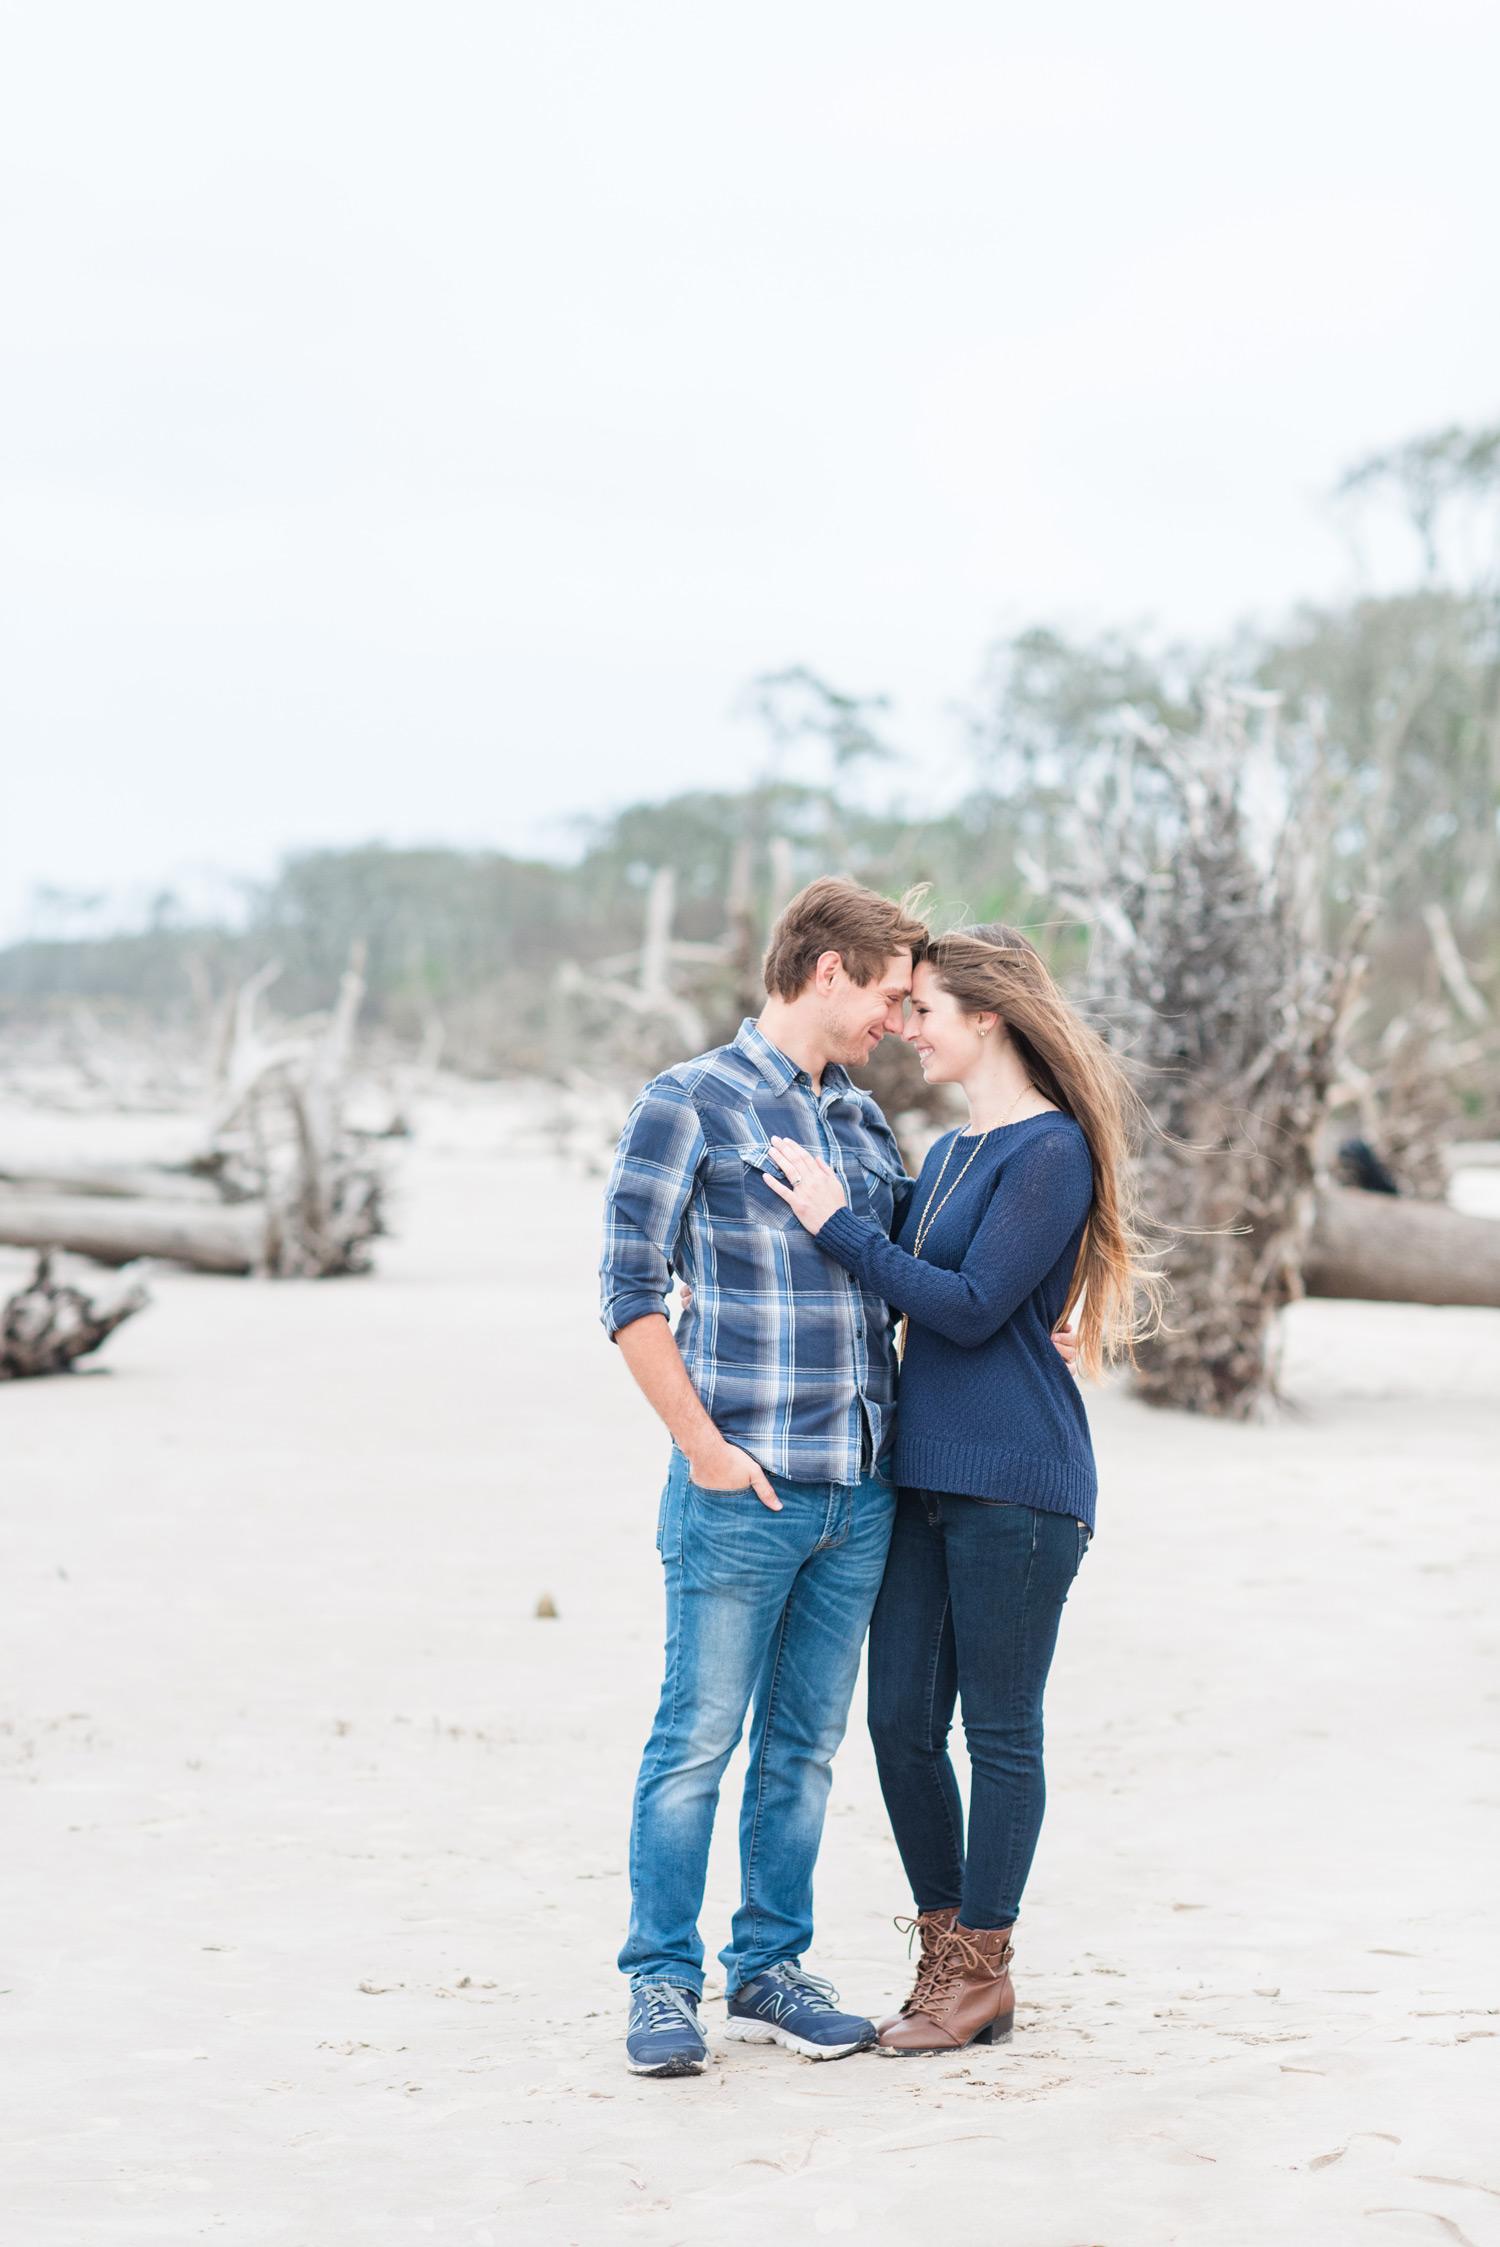 ©christineaustinphotography_Engagement_05.jpg